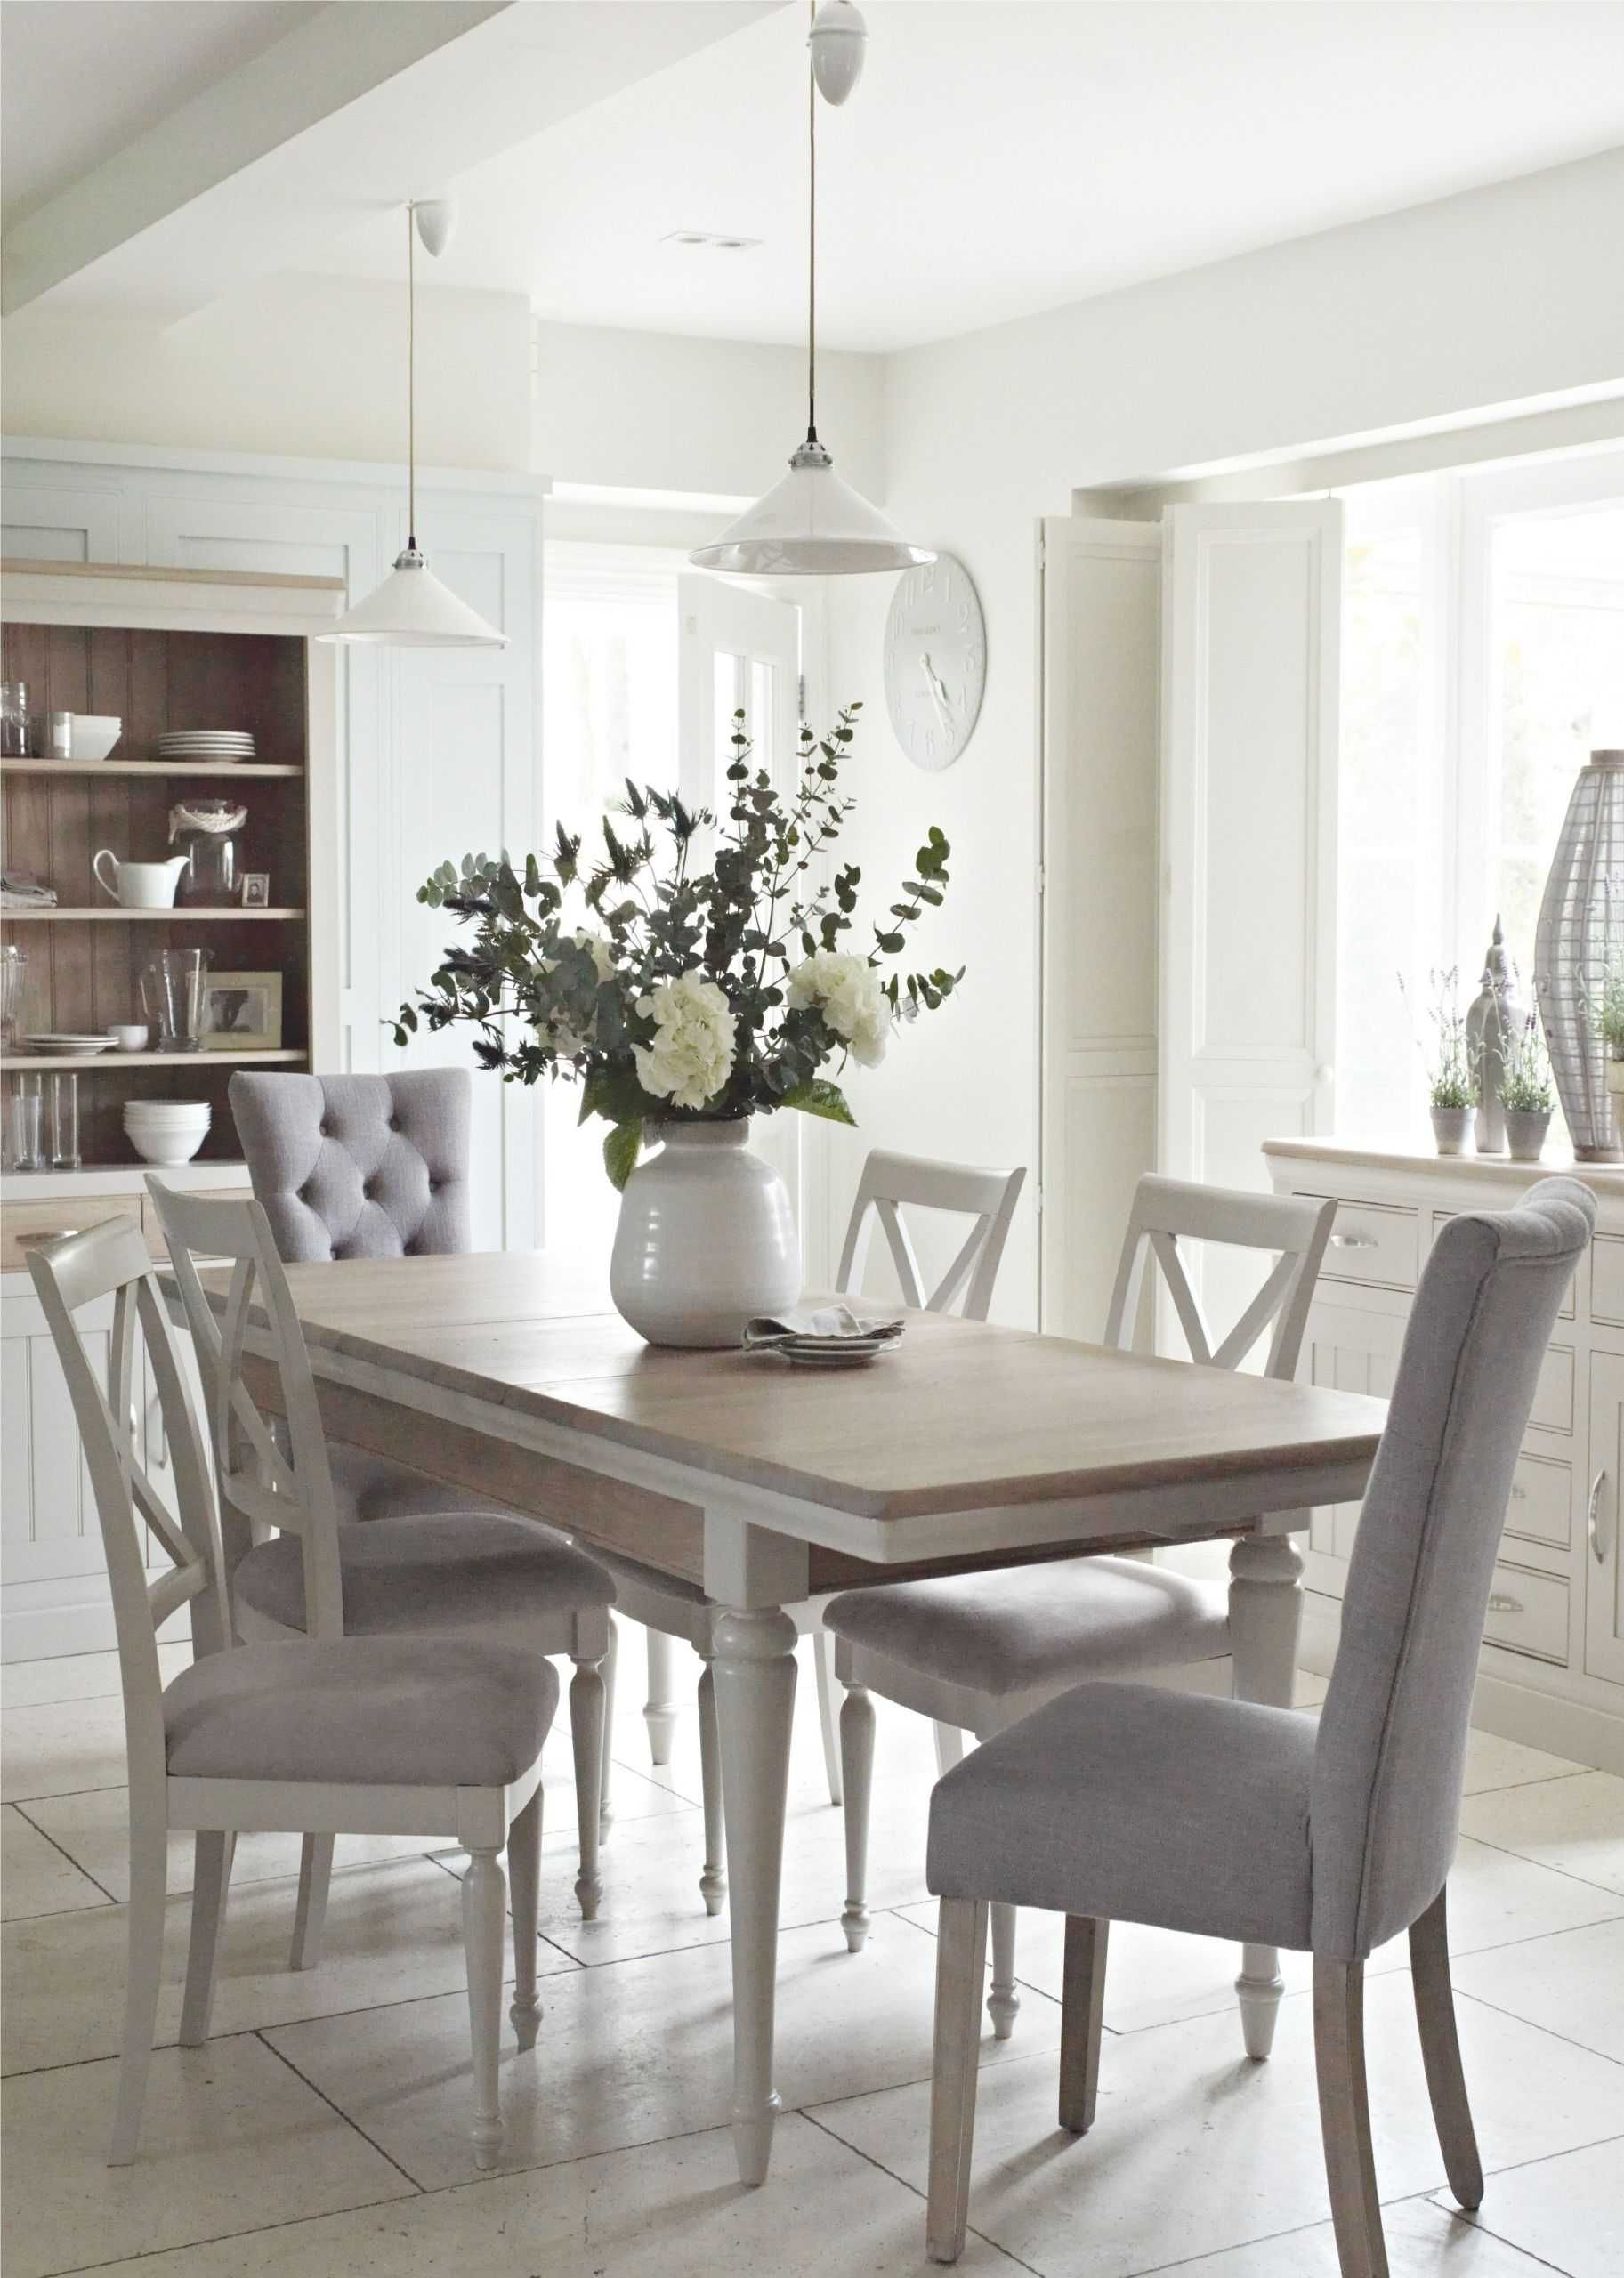 Classic Dining Room Furniture In 2020 Dining Room Table Decor White Dining Room Table Grey Dining Room